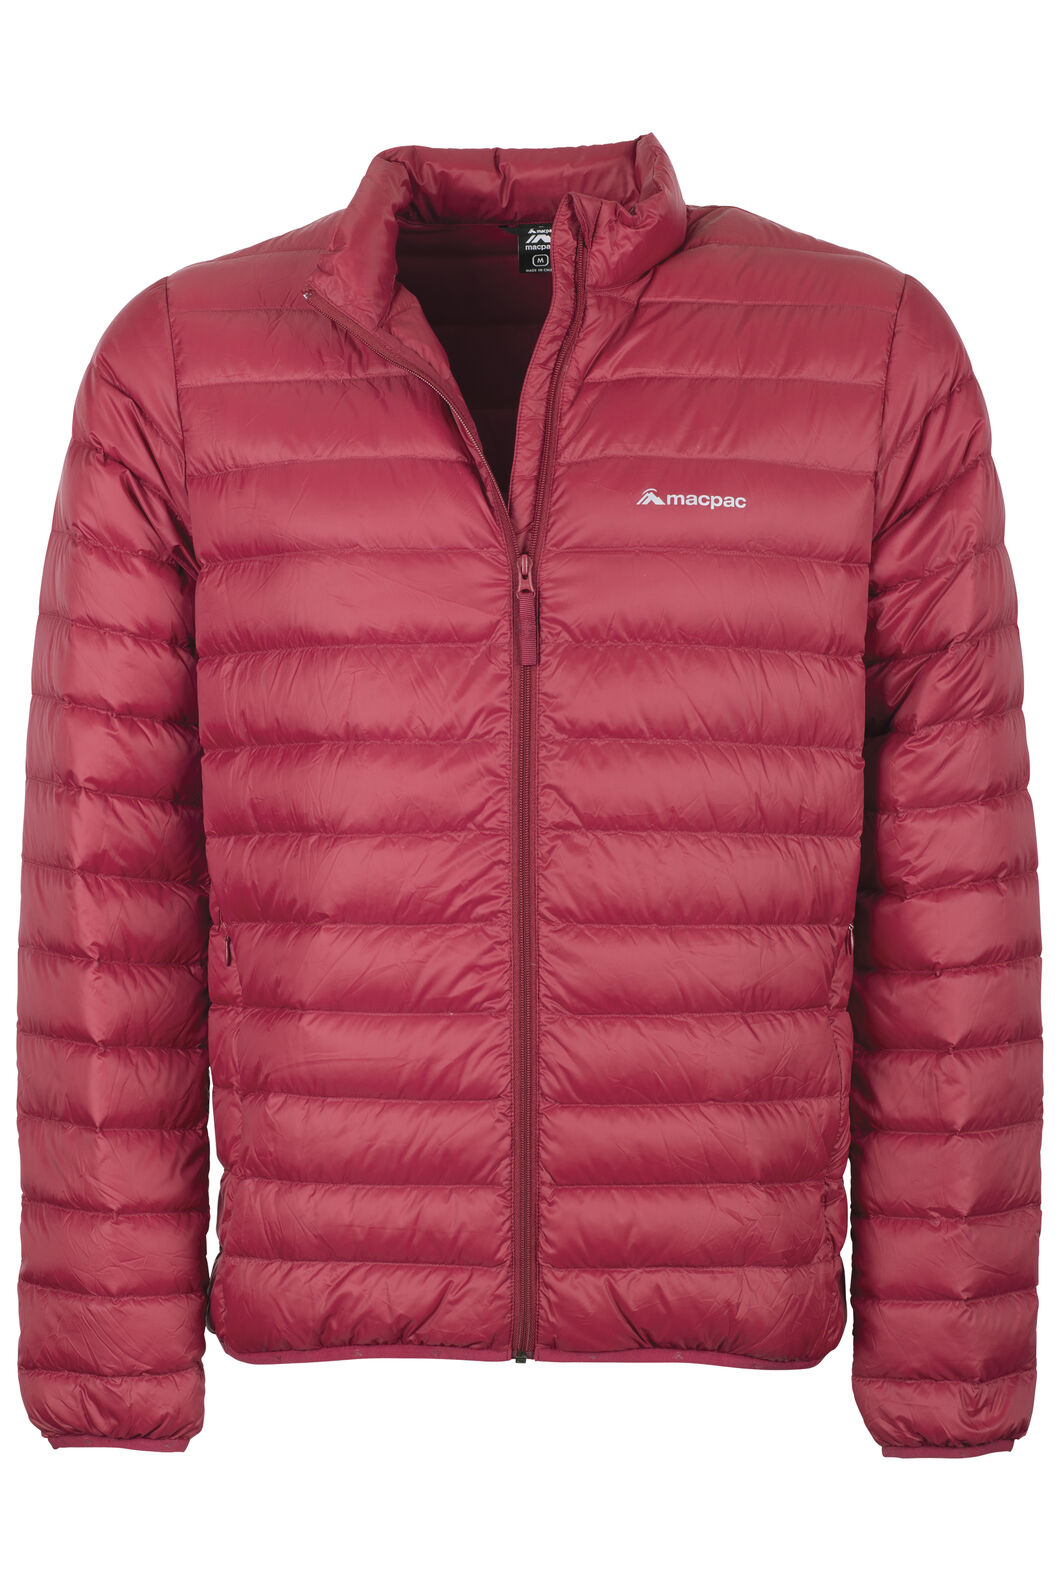 Macpac Uber Light Down Jacket - Men's, Biking Red, hi-res